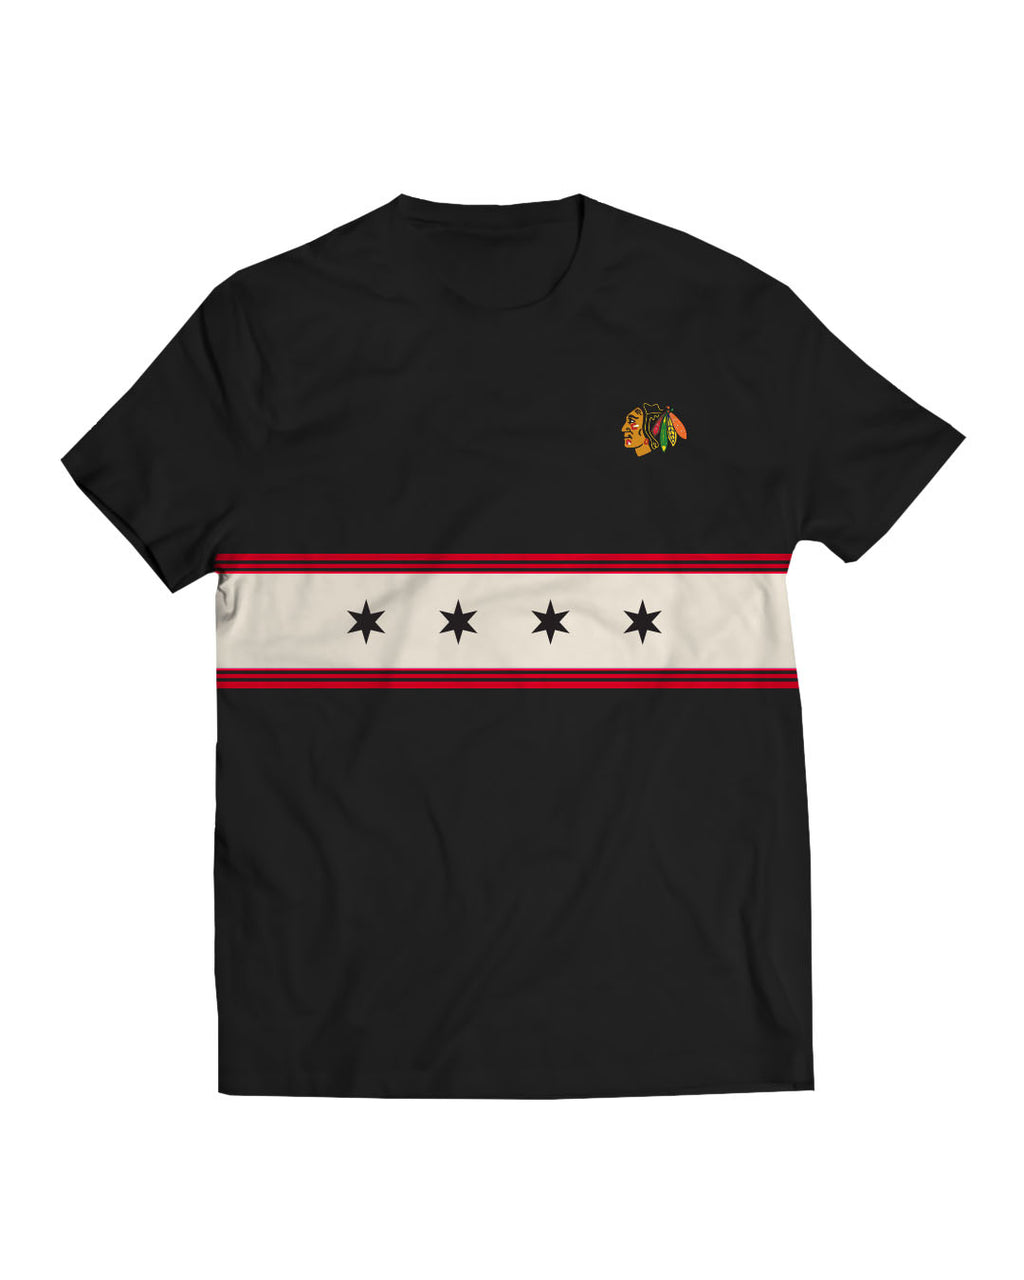 Blackhawks Stars Black Tee